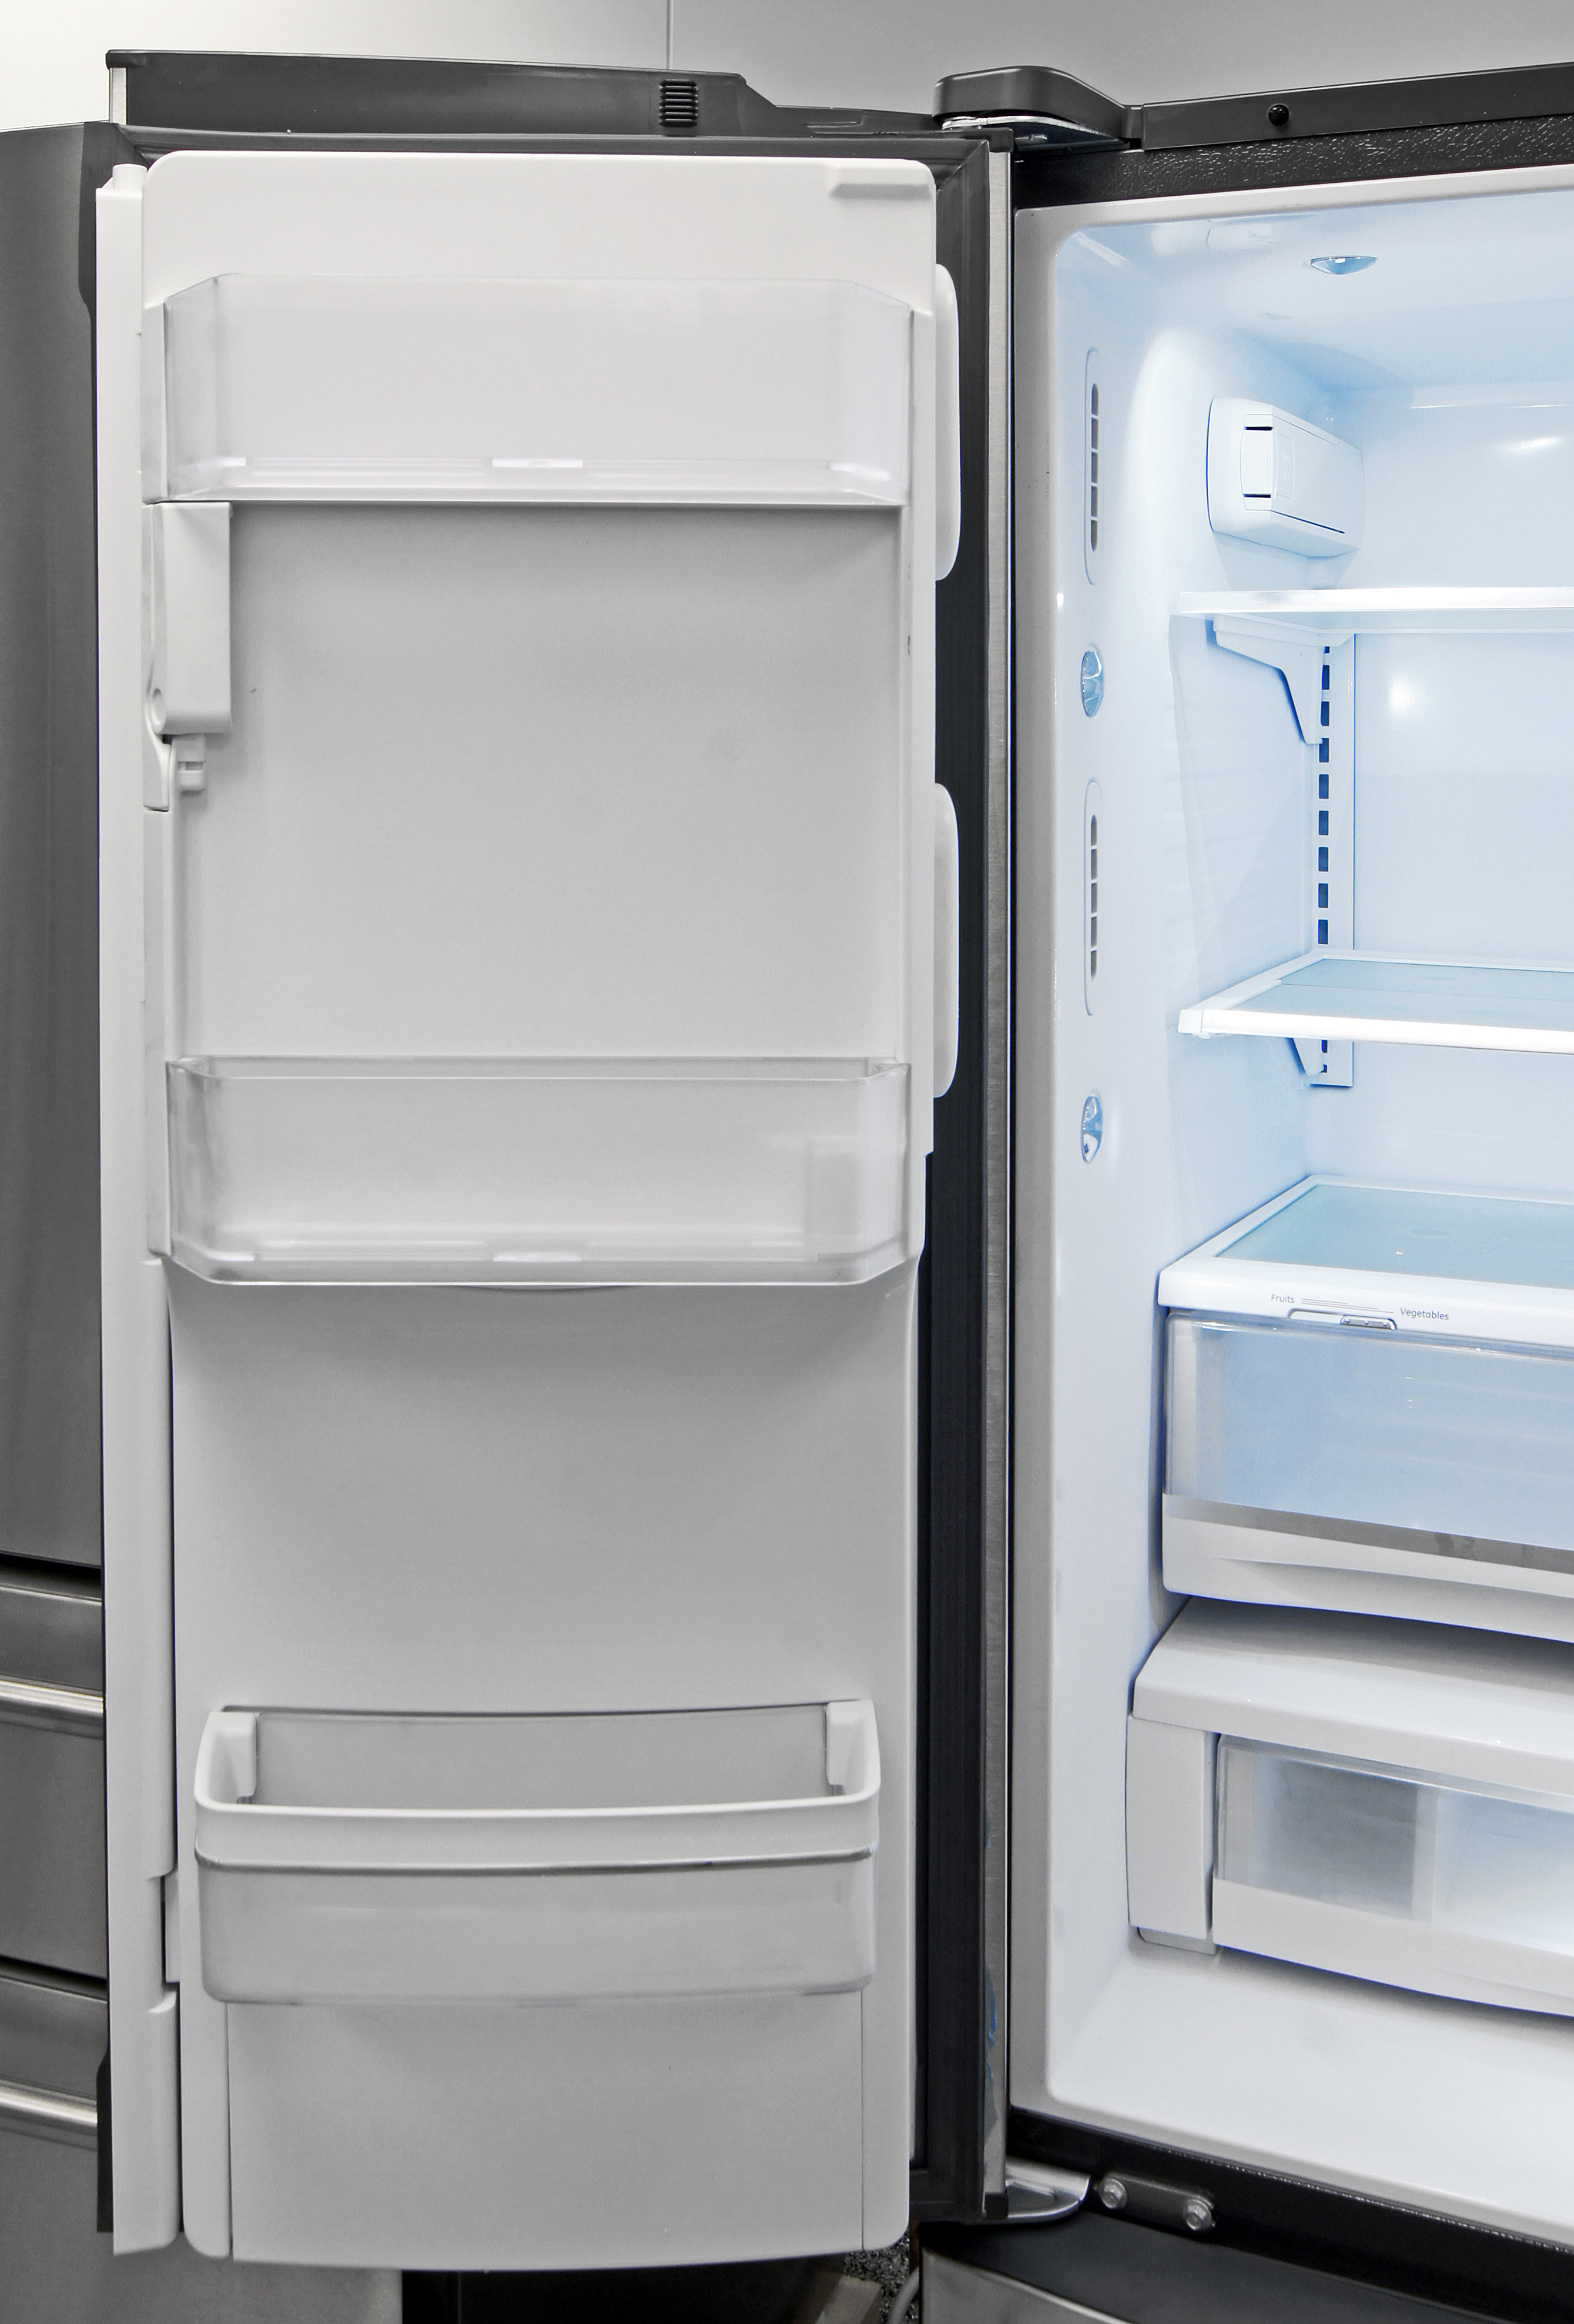 Ge Profile Pfe28rshss Refrigerator Review Reviewed Com